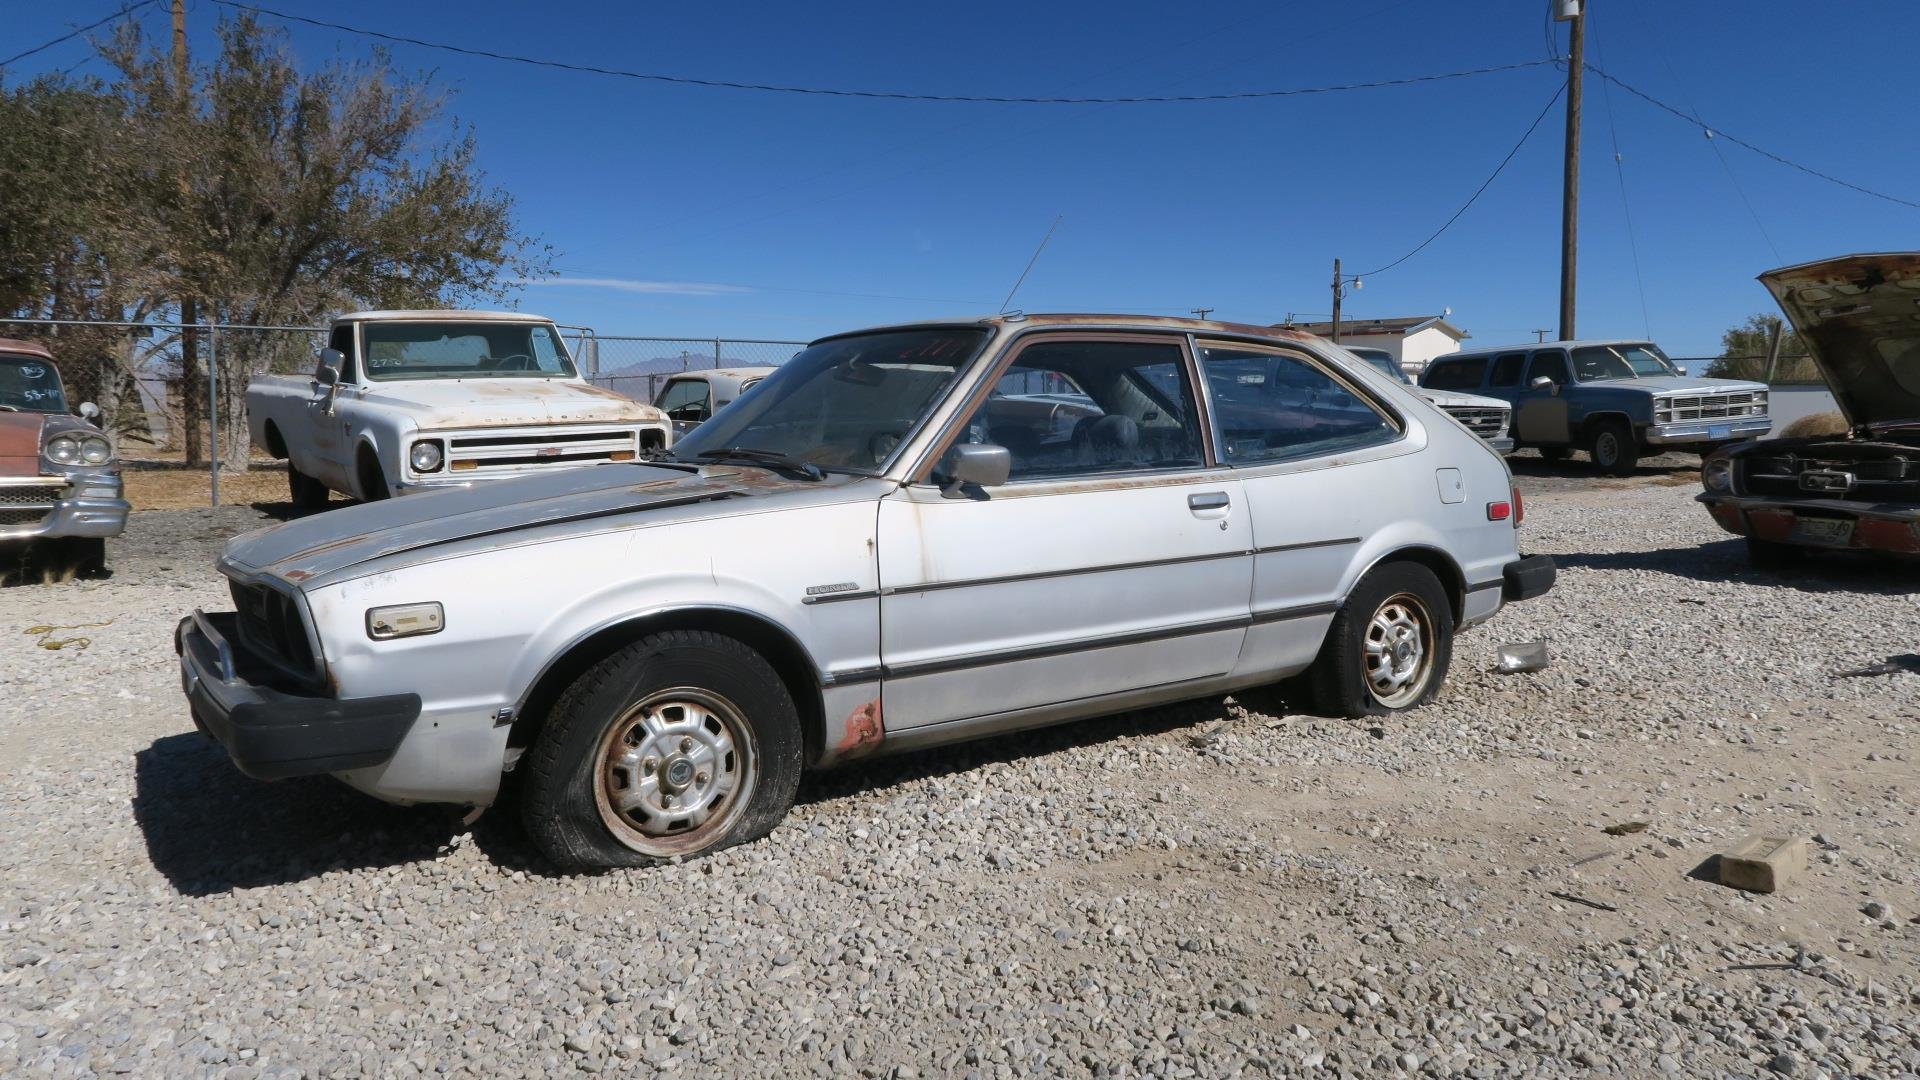 1977 Honda CVCC 5 Speed Project Silver(~)Black  $2.9k For Sale (picture 1 of 6)